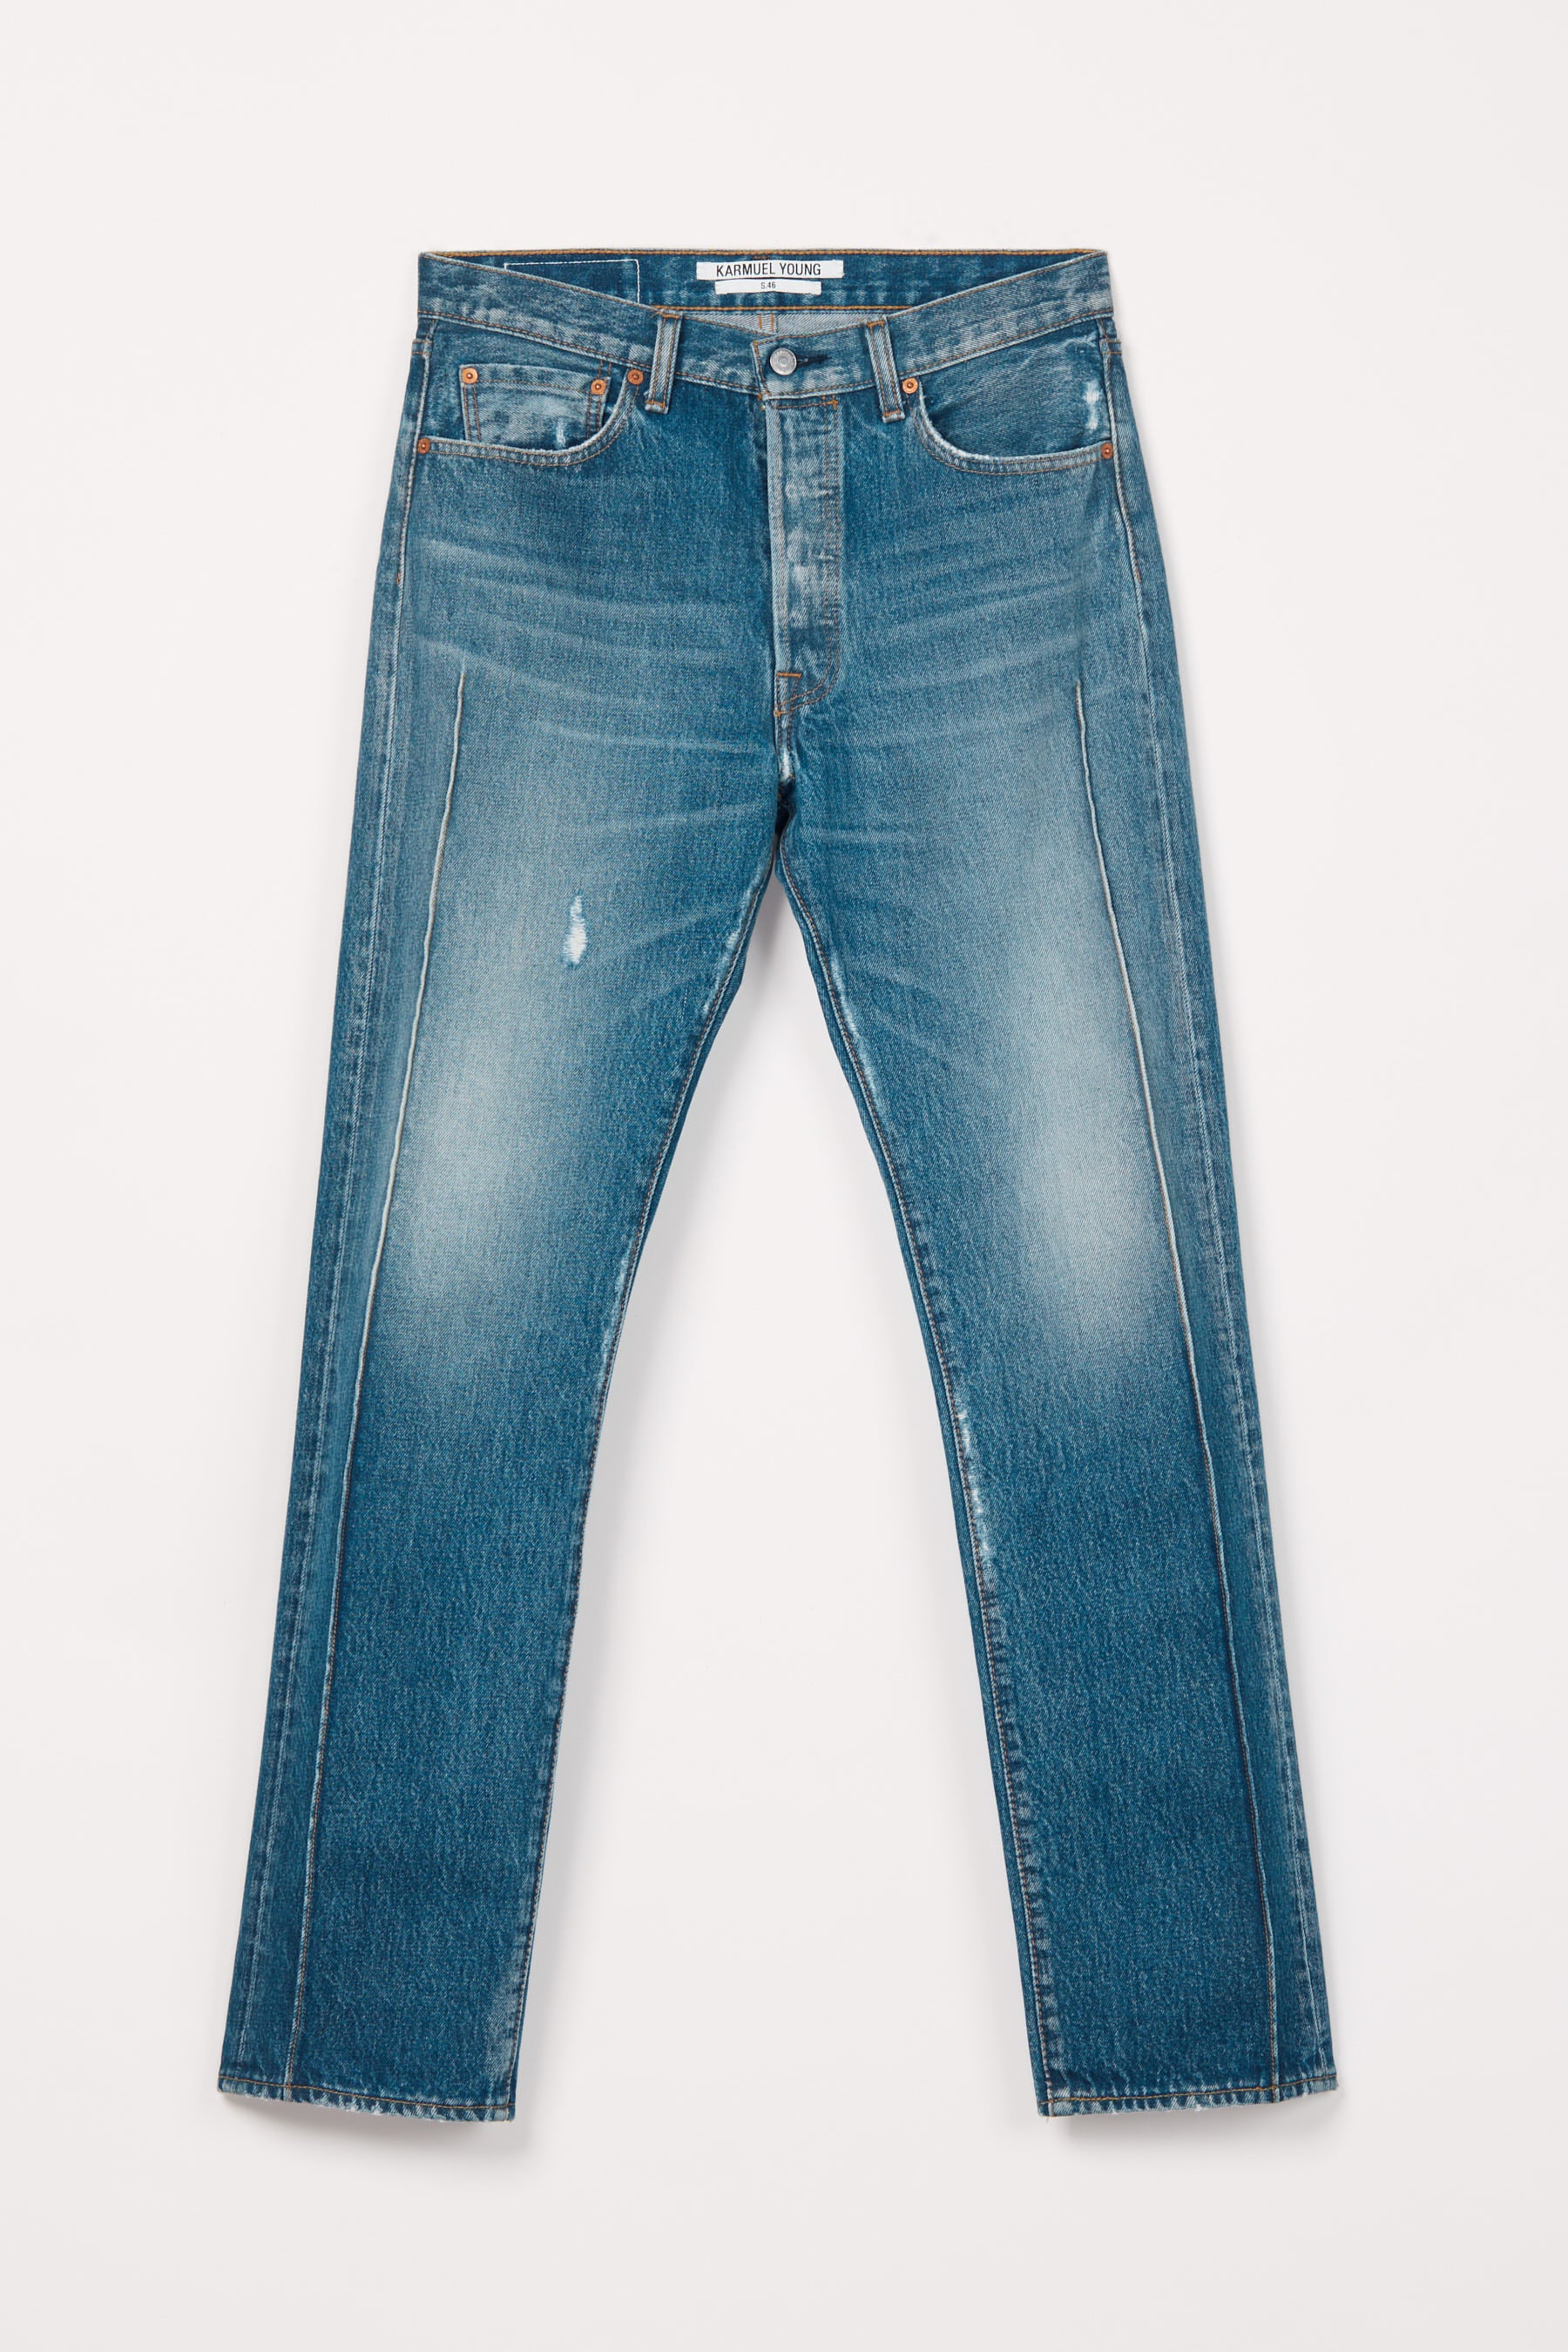 RE-edited Blue Washed Cuboid Levi's 501 jeans